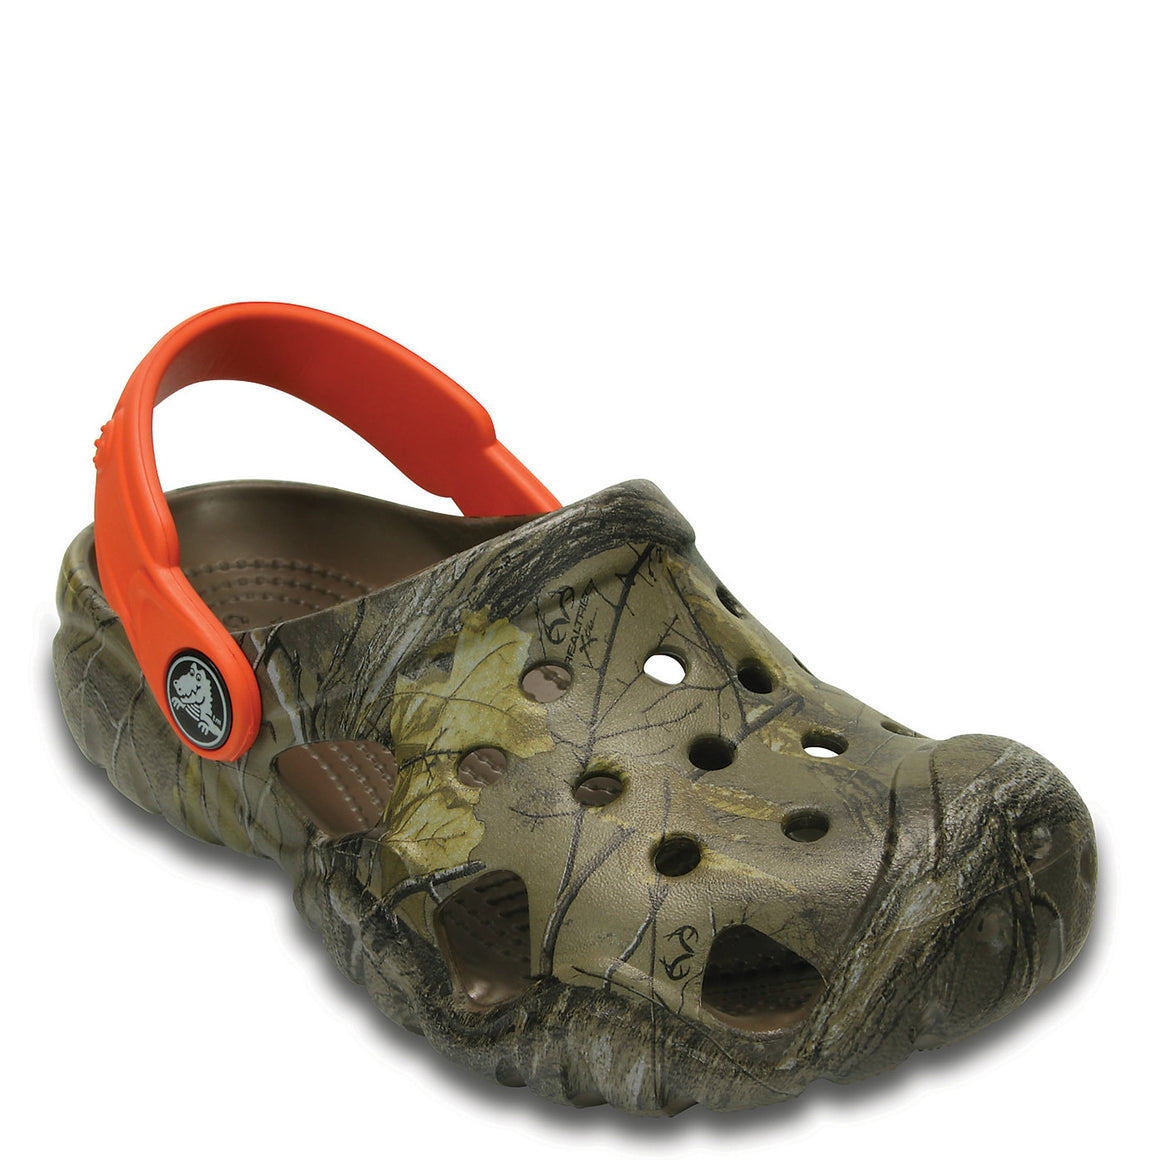 Crocs Kid's Swiftwater Realtree Xtra Clog - Walnut/Tangerine 203201-280 - ShoeShackOnline